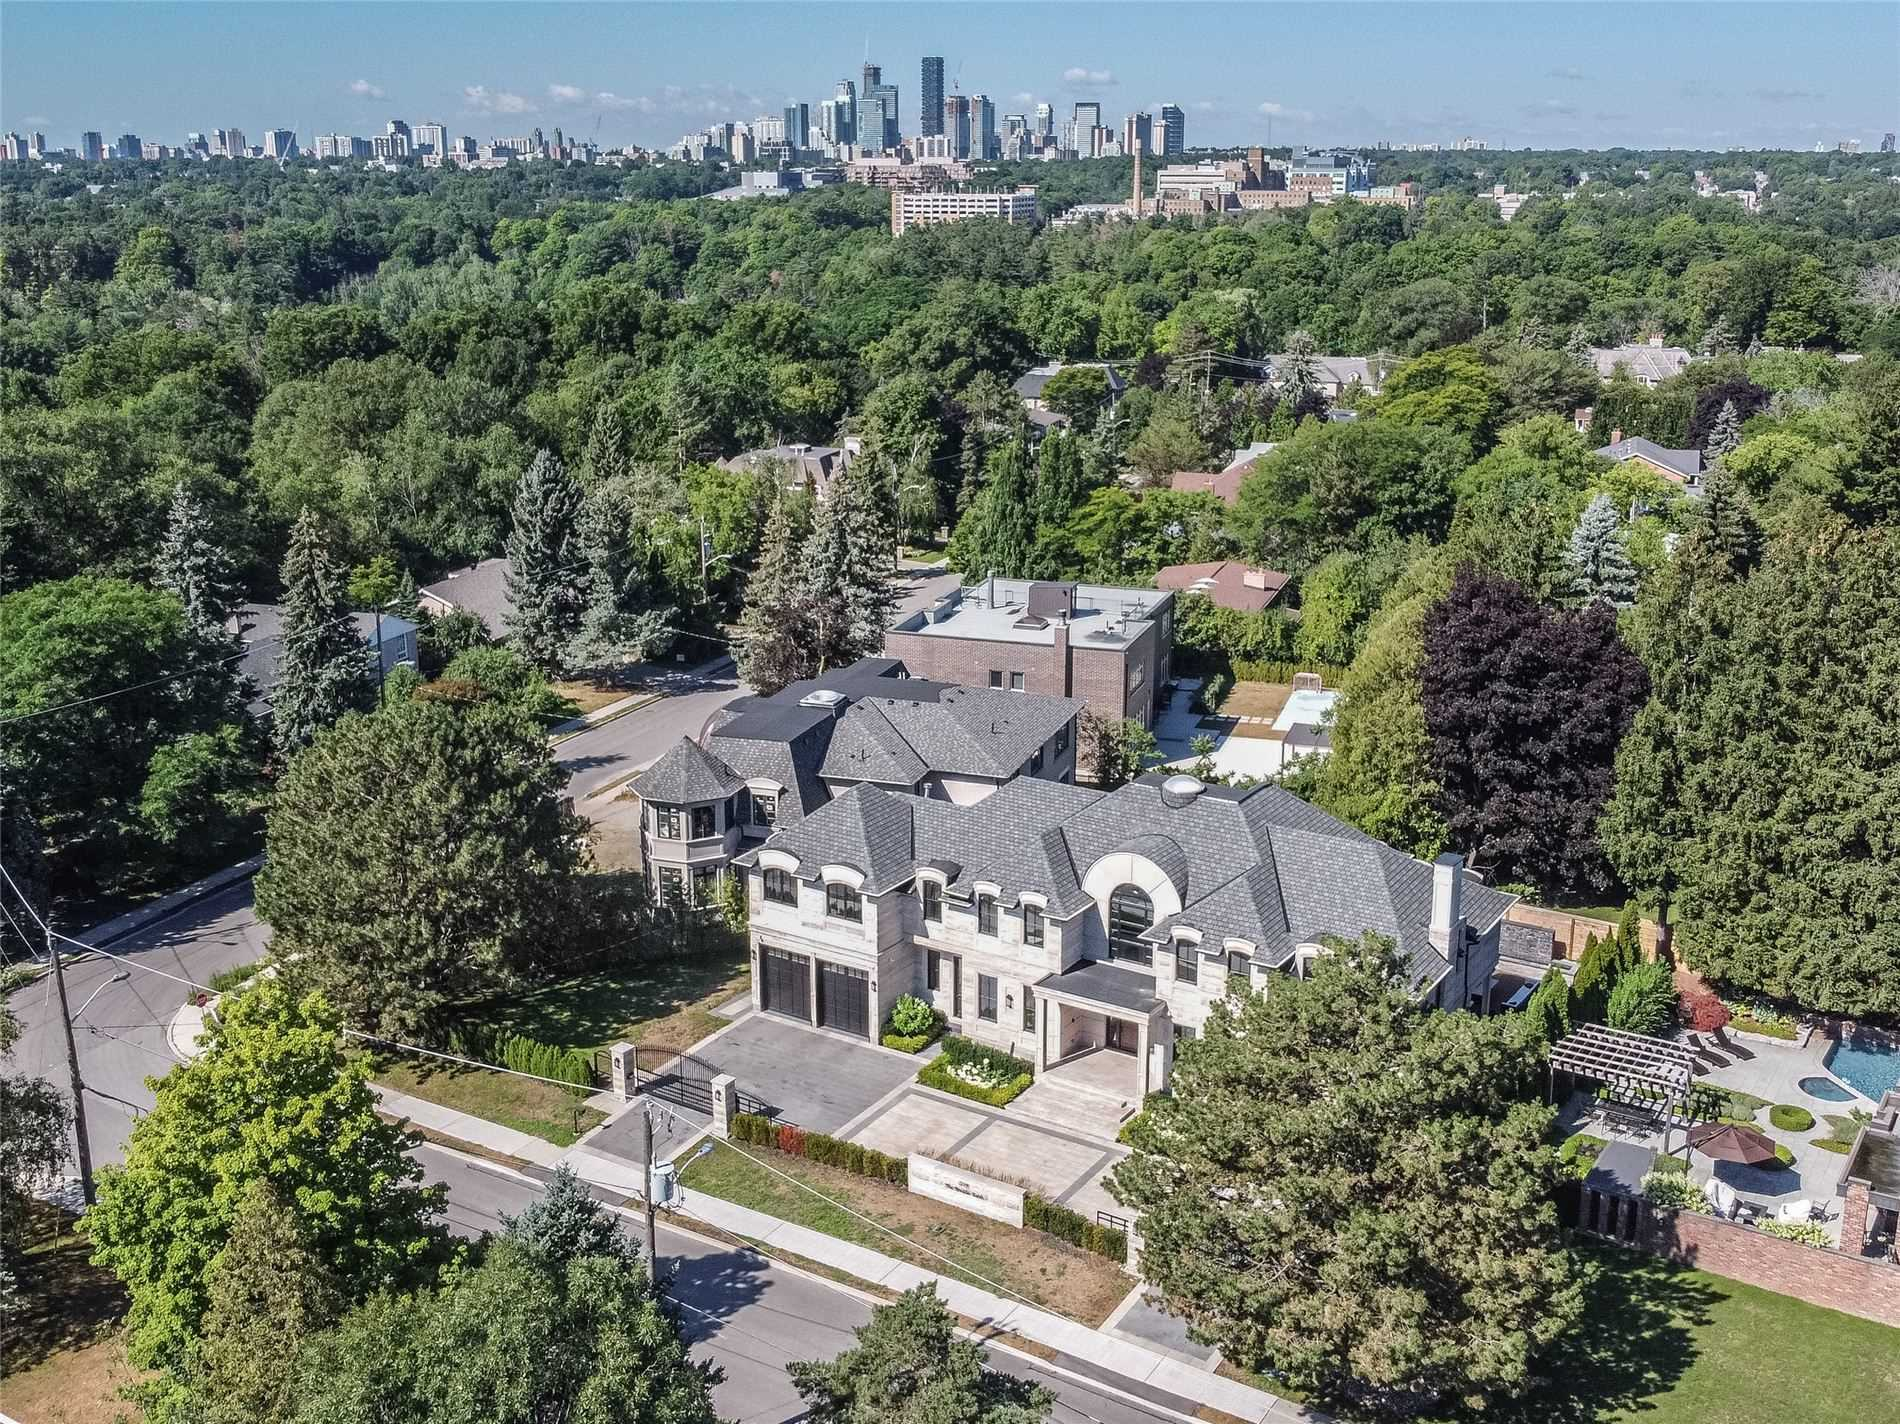 205 The Bridle Path, Bridle Path-Sunnybrook-York Mills, Toronto, Ontario M3C 2P6, 5 Bedrooms Bedrooms, 10 Rooms Rooms,9 BathroomsBathrooms,Detached,For Sale,The Bridle Path,C4866205